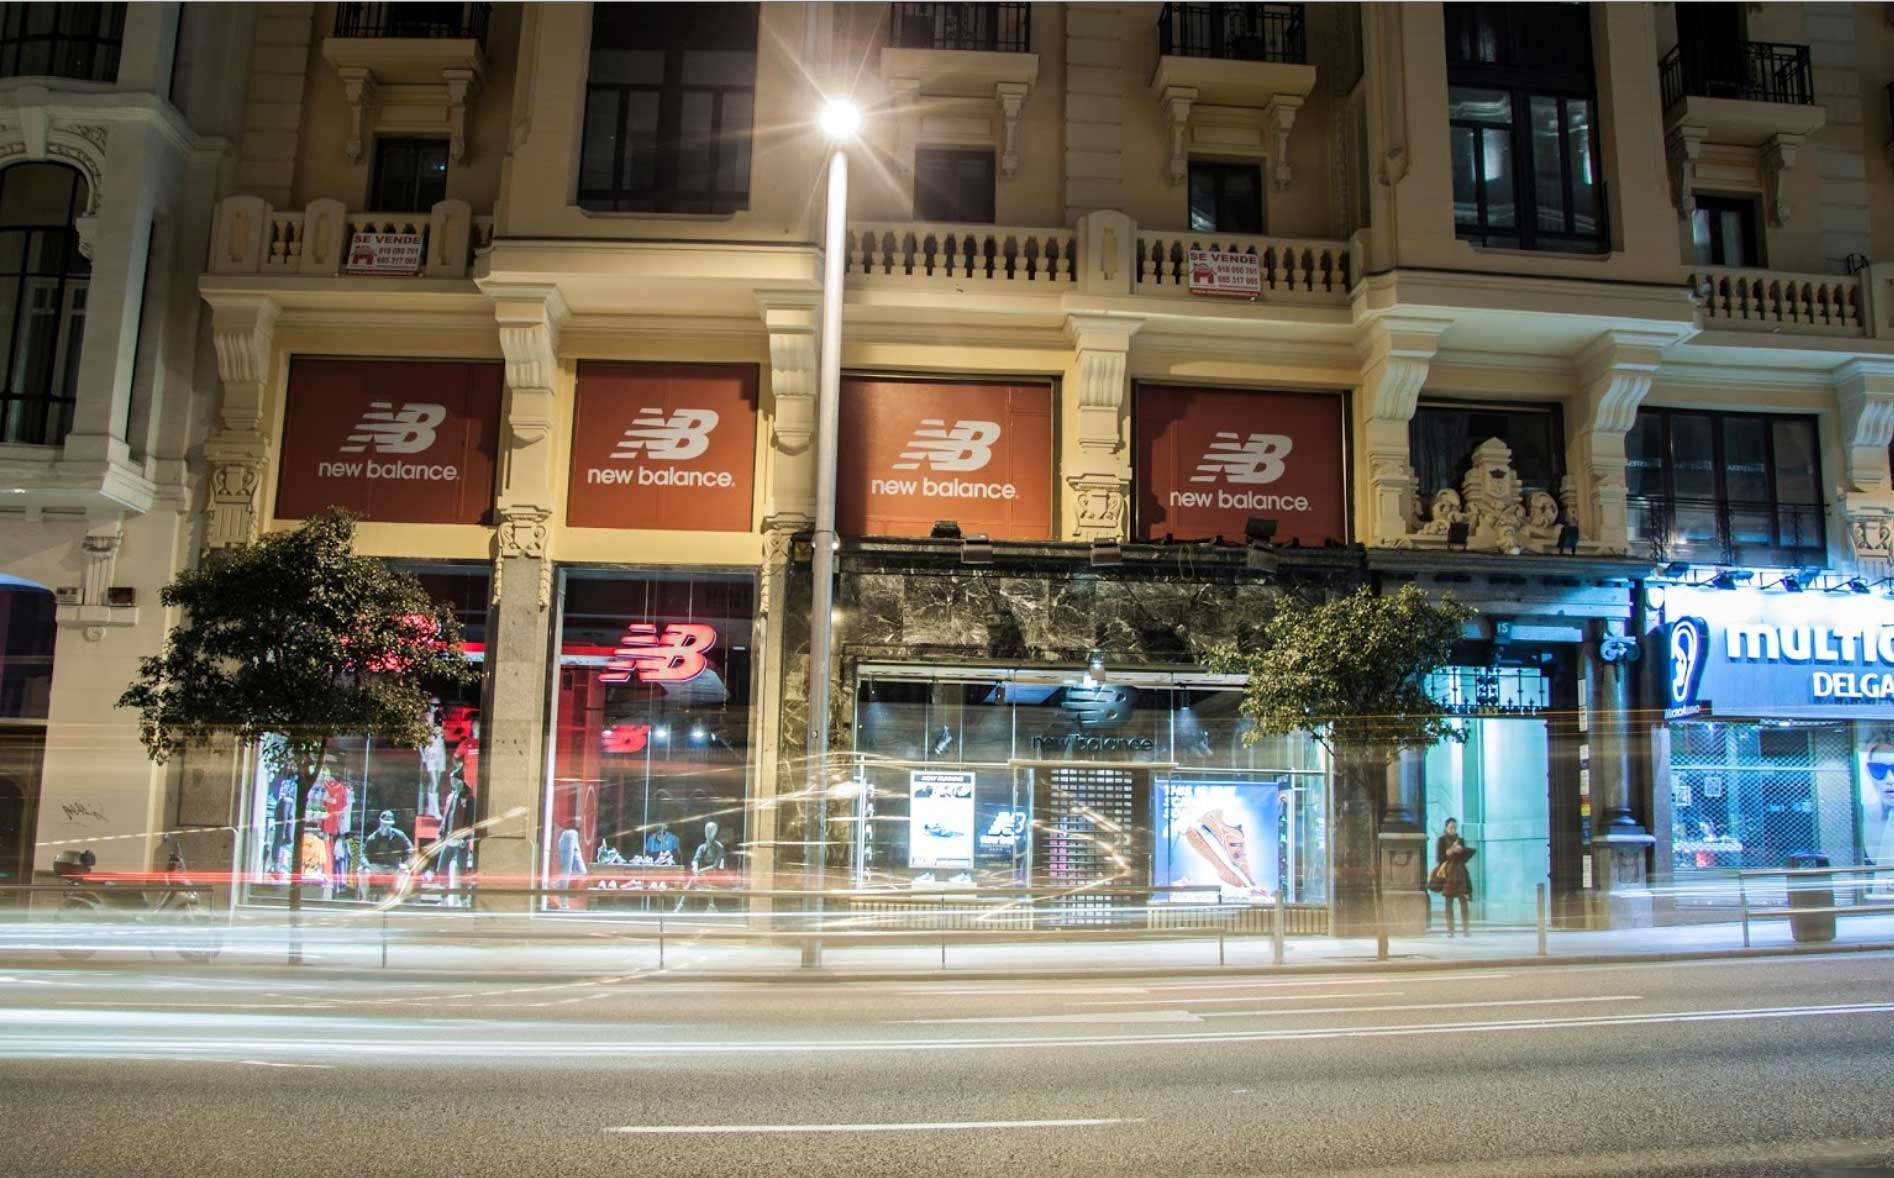 Tszgqyzs outlet new balance madrid - Gancedo outlet madrid ...